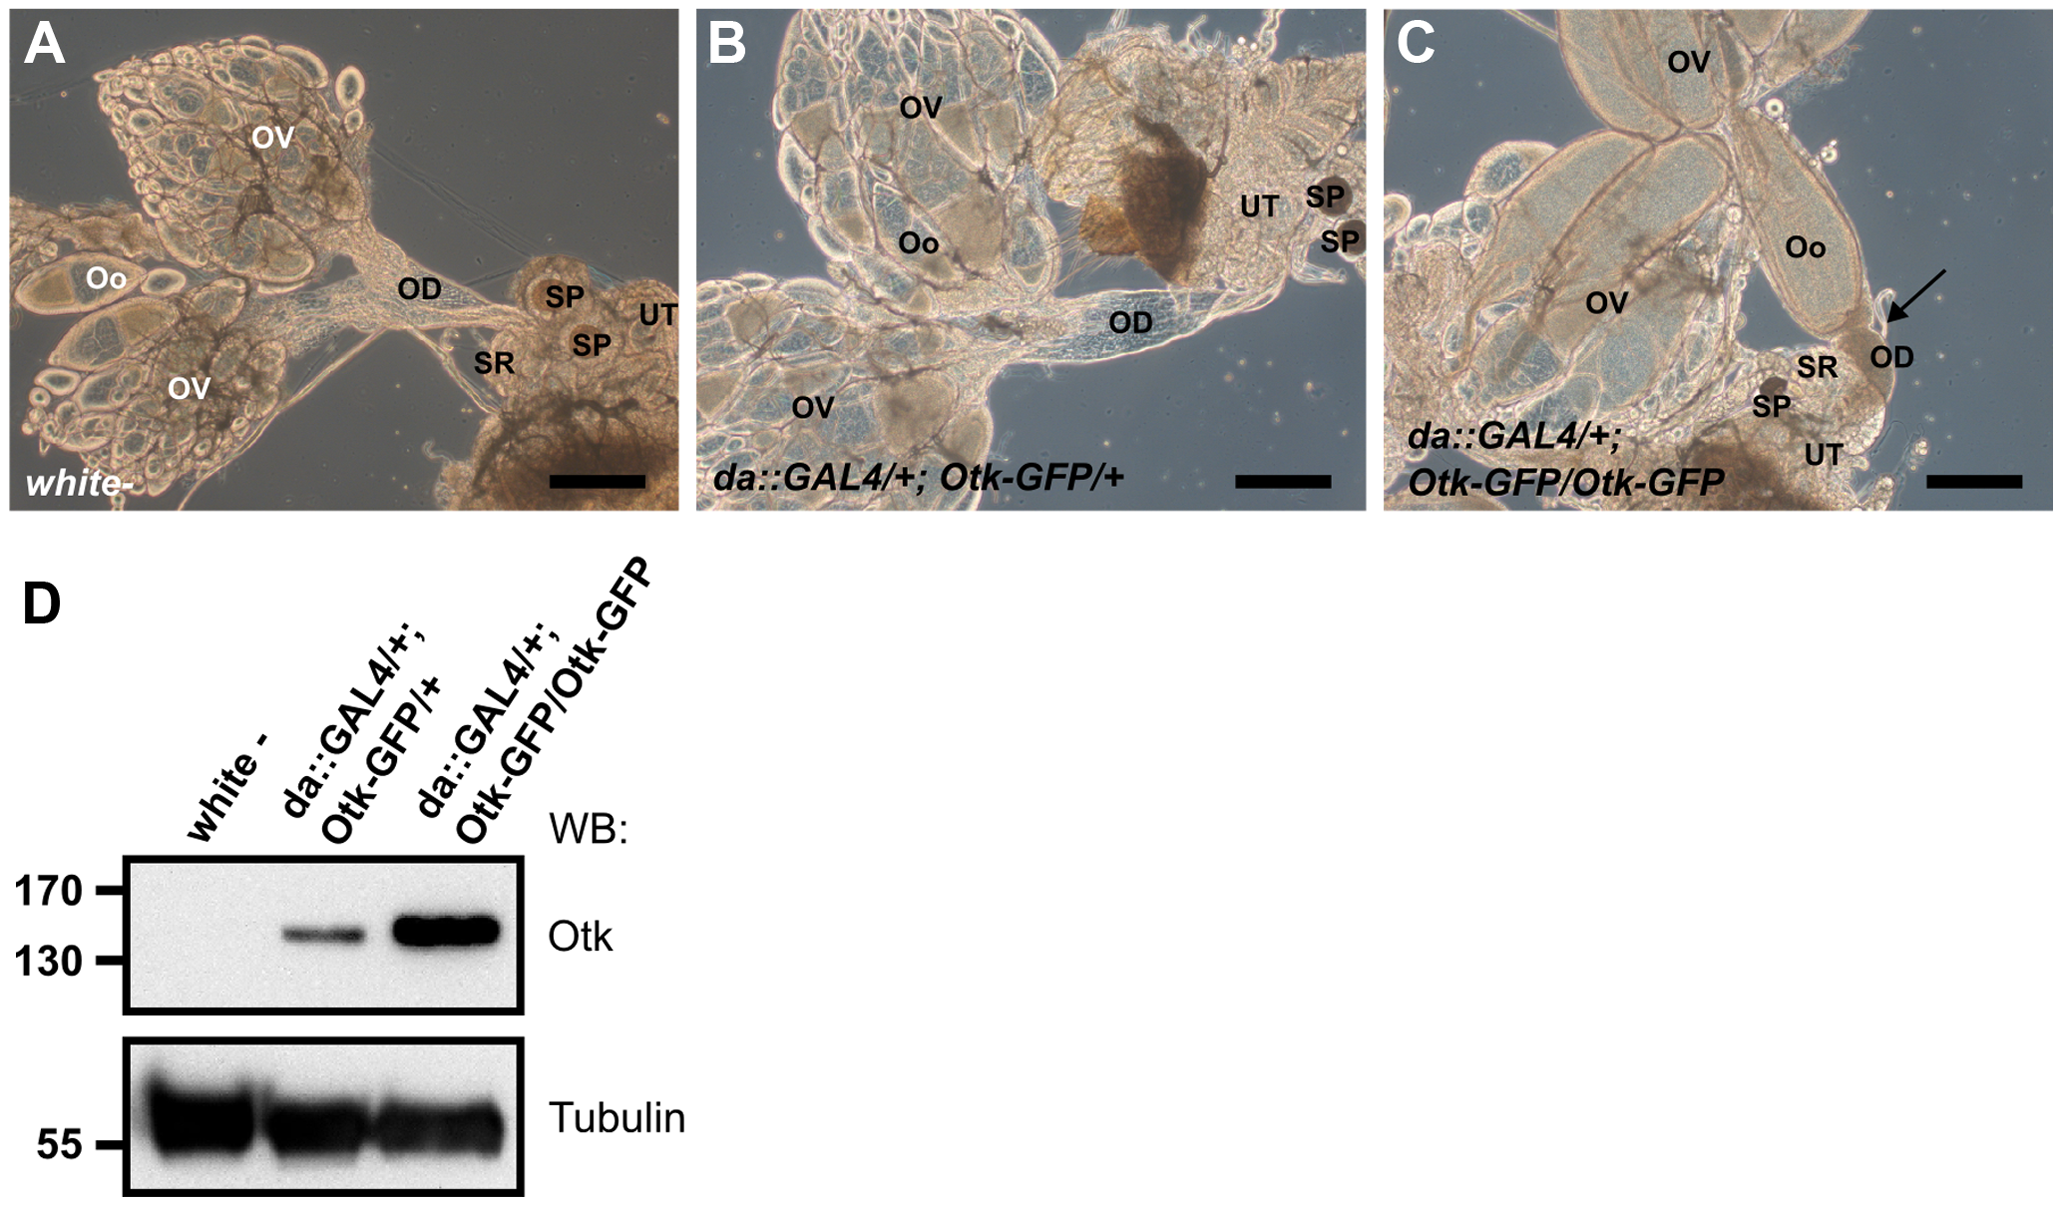 Otk-GFP overexpression causes defective morphogenesis of the oviduct.